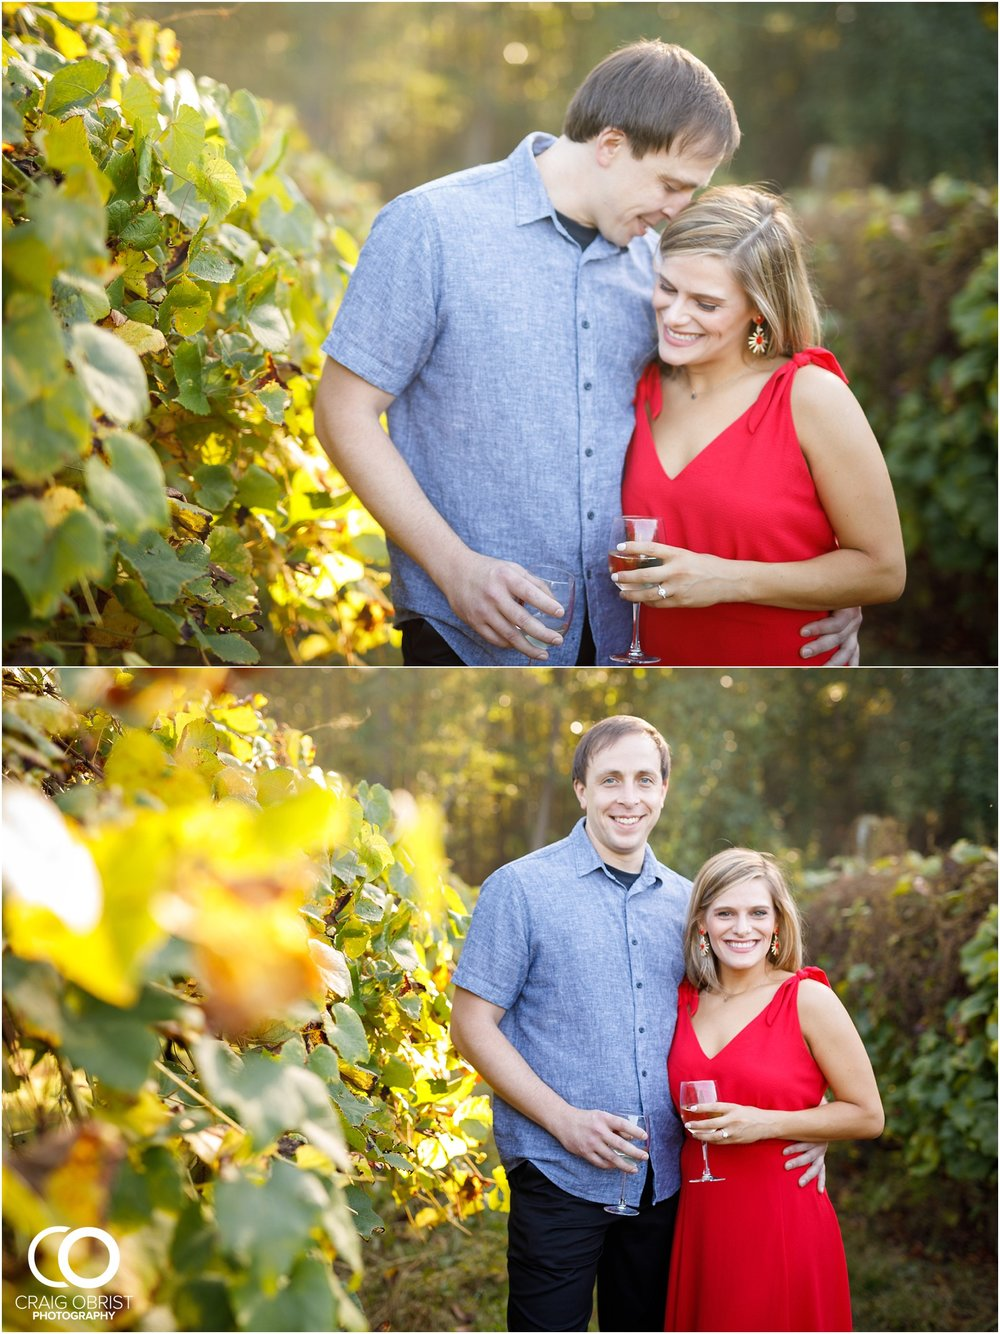 sunflowers fields north georgia engagement portraits wine vineyard_0005.jpg